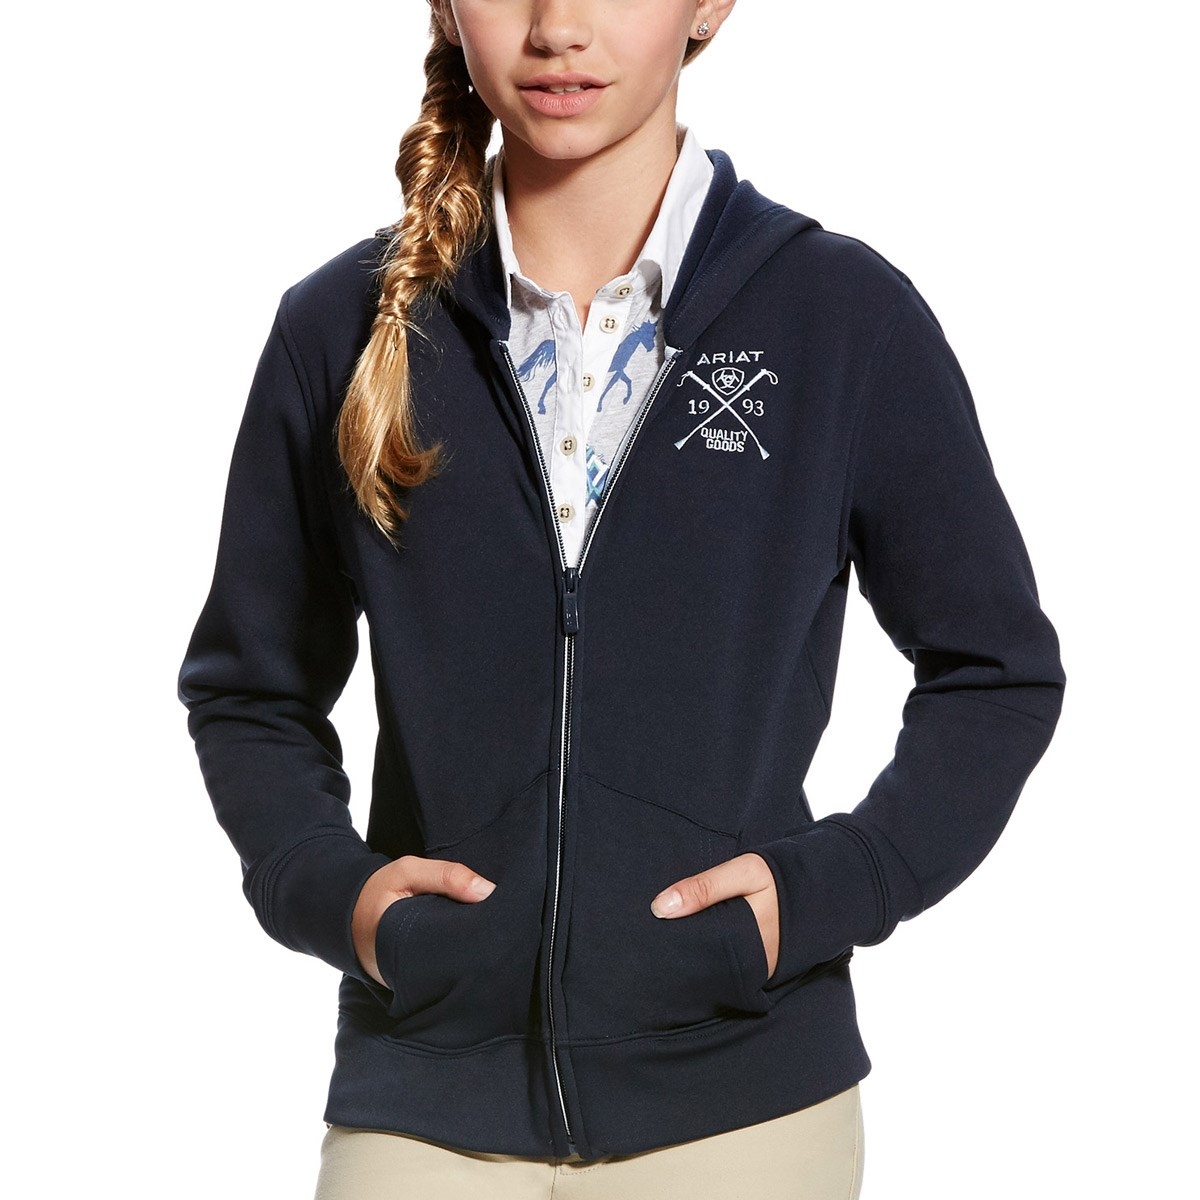 e4d9ad8e57958 Ariat Milton Youth Hoodie - Navy - Redpost Equestrian